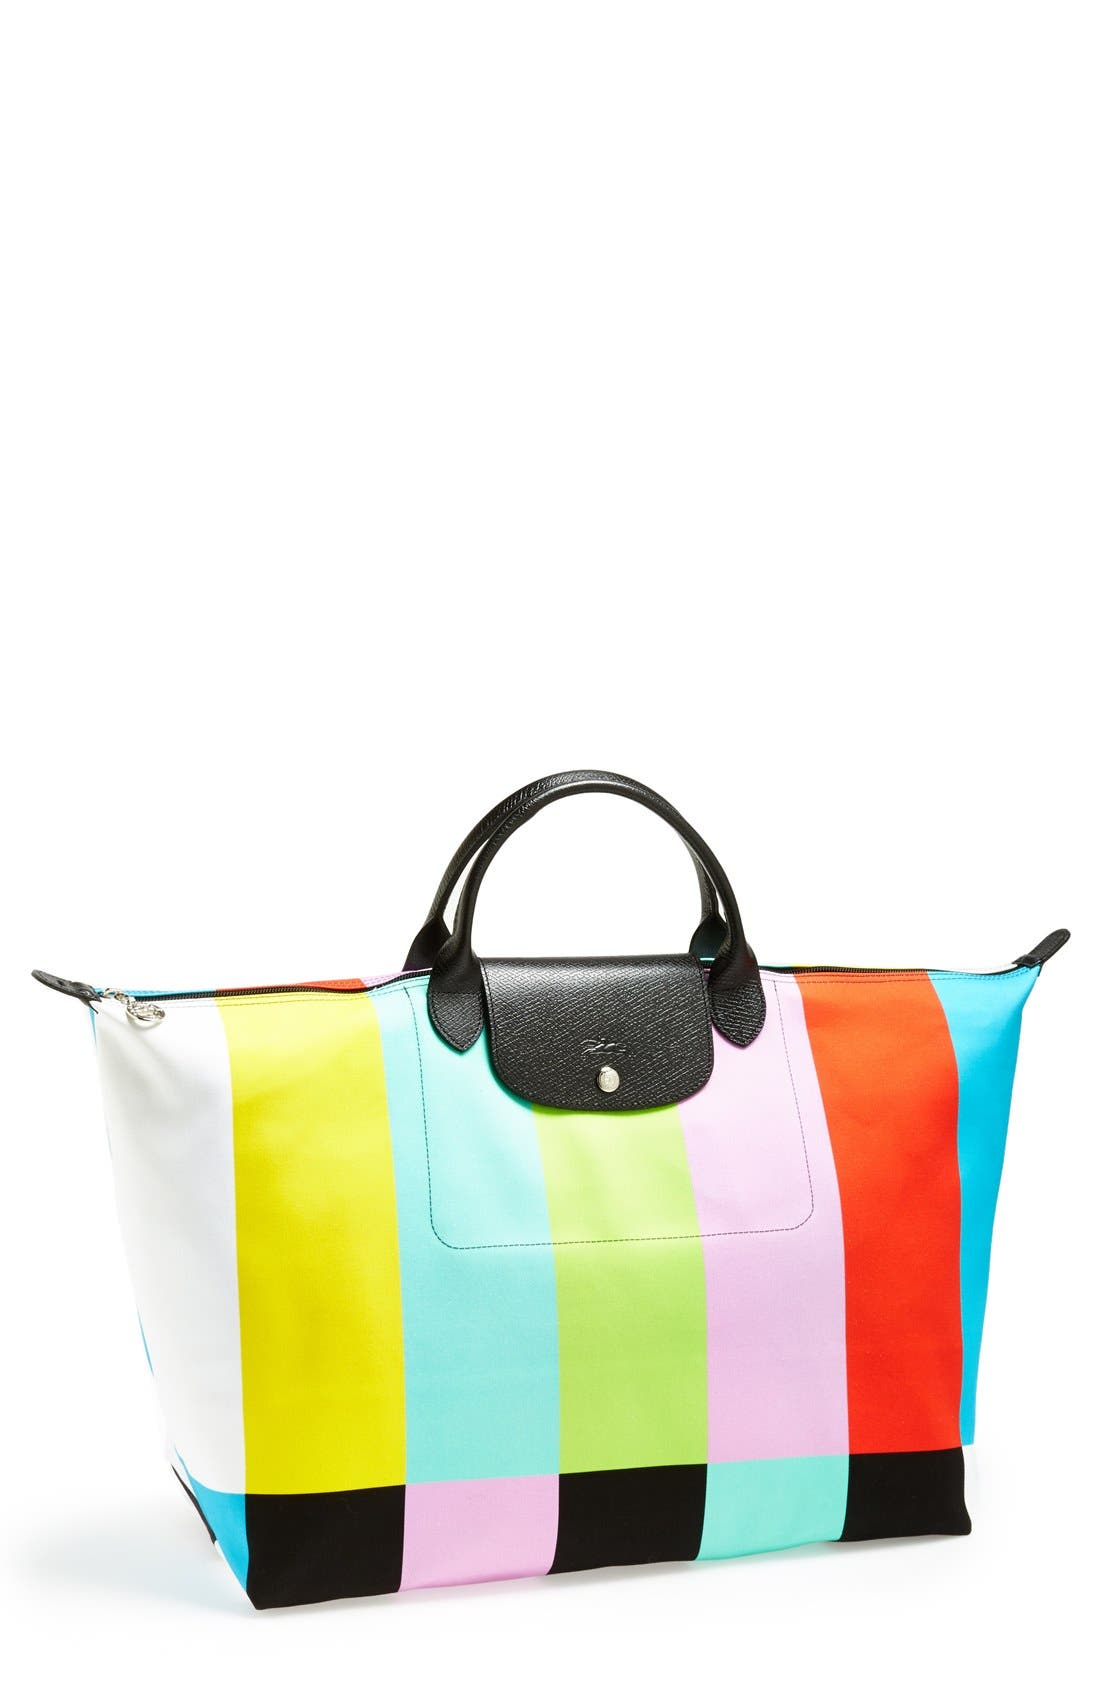 Main Image - Longchamp 'Jeremy Scott - Color Bar' Travel Bag